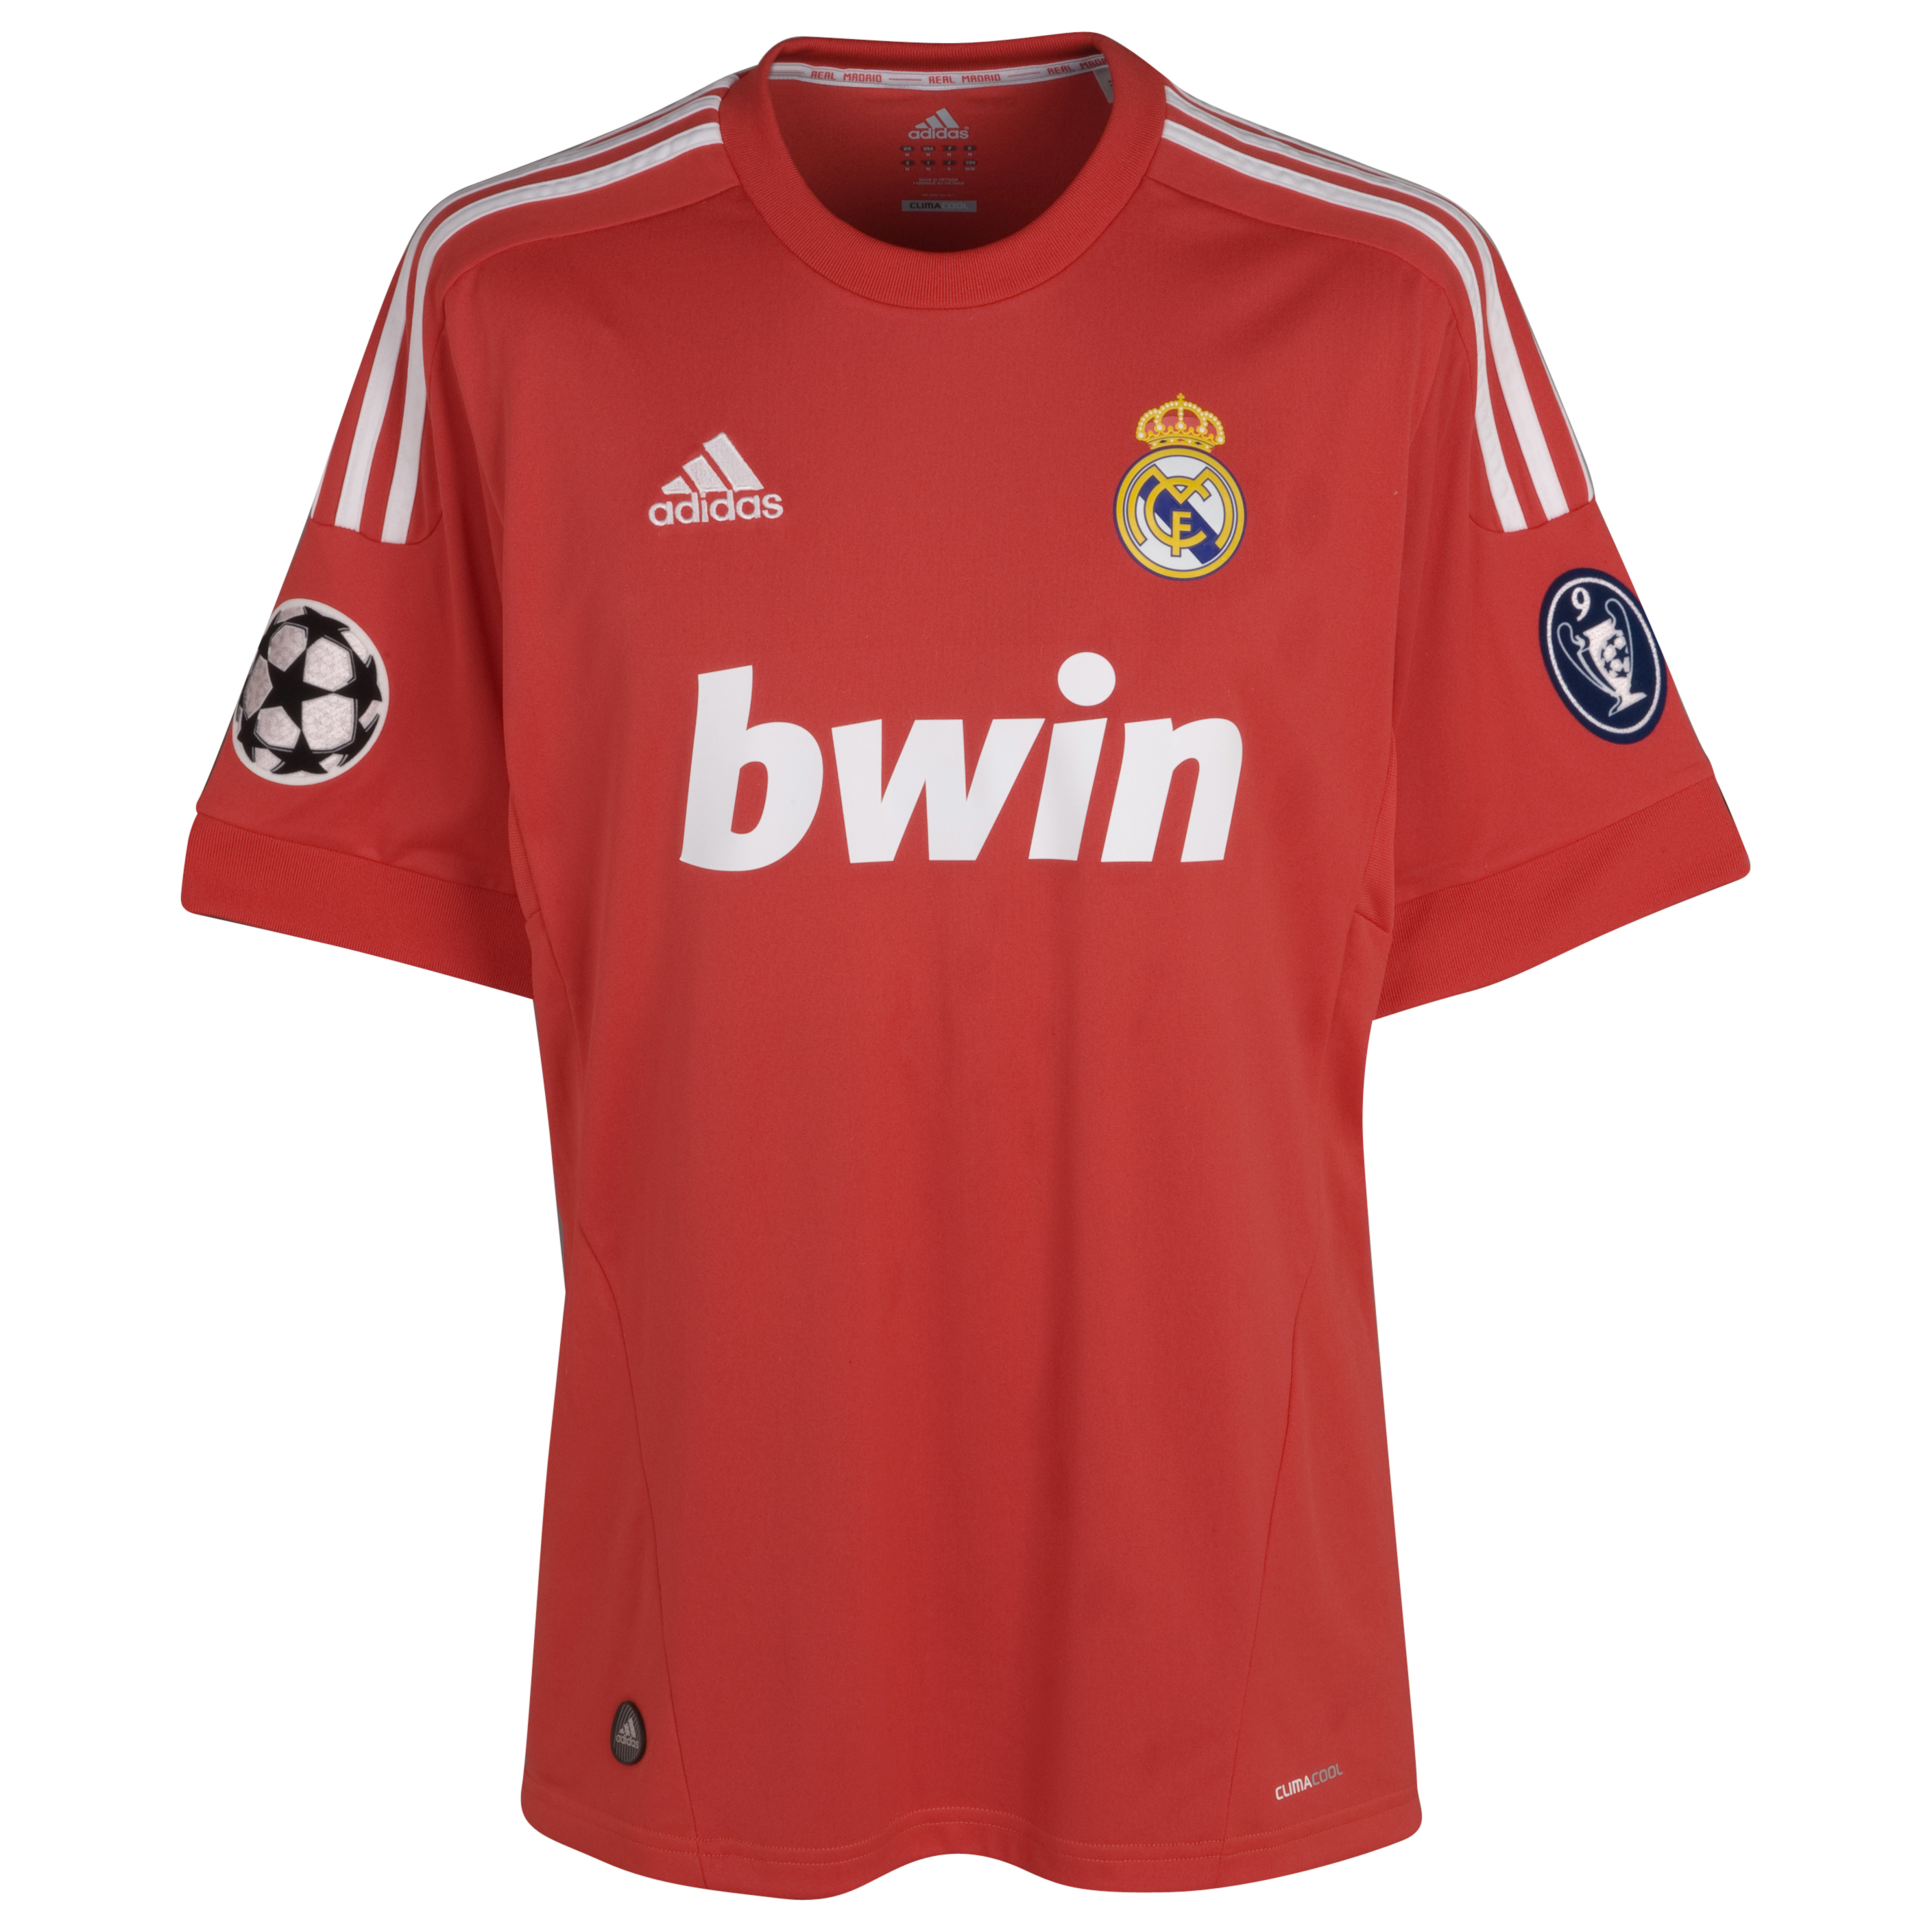 Real Madrid UEFA Champions League Third Shirt 2011/12 - Kids